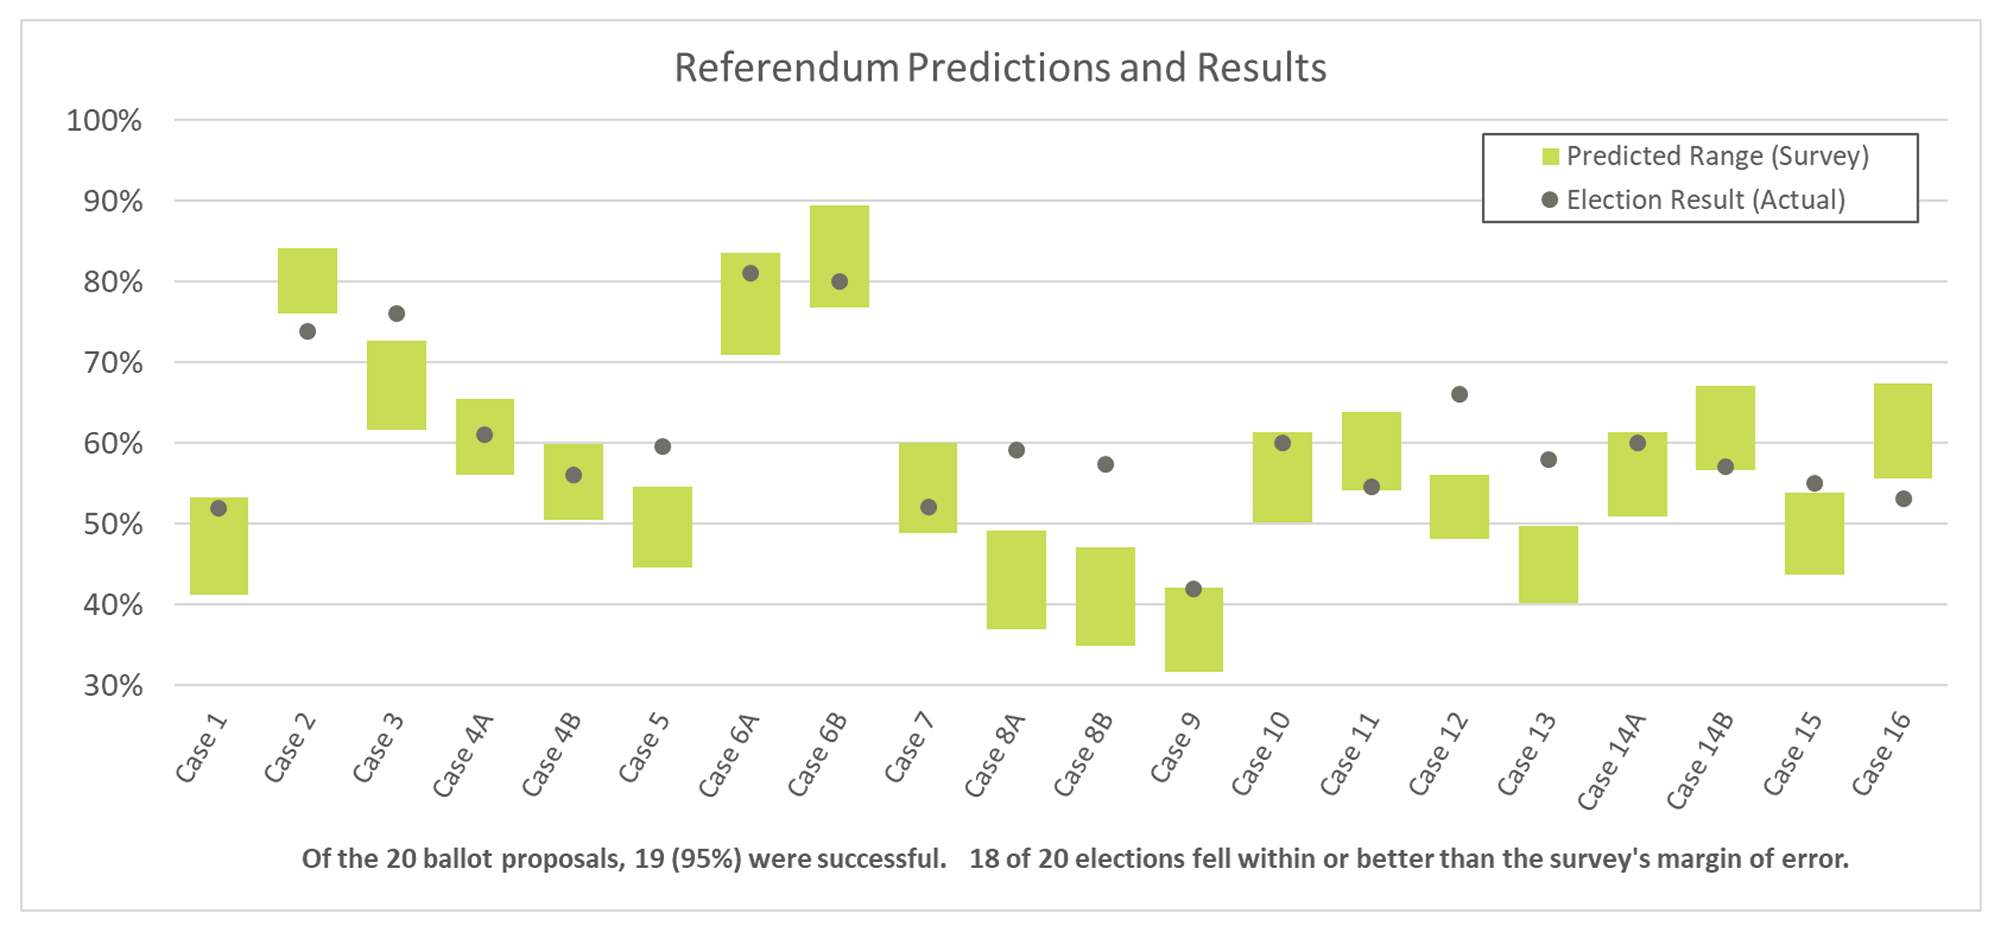 Referendum predictions and results